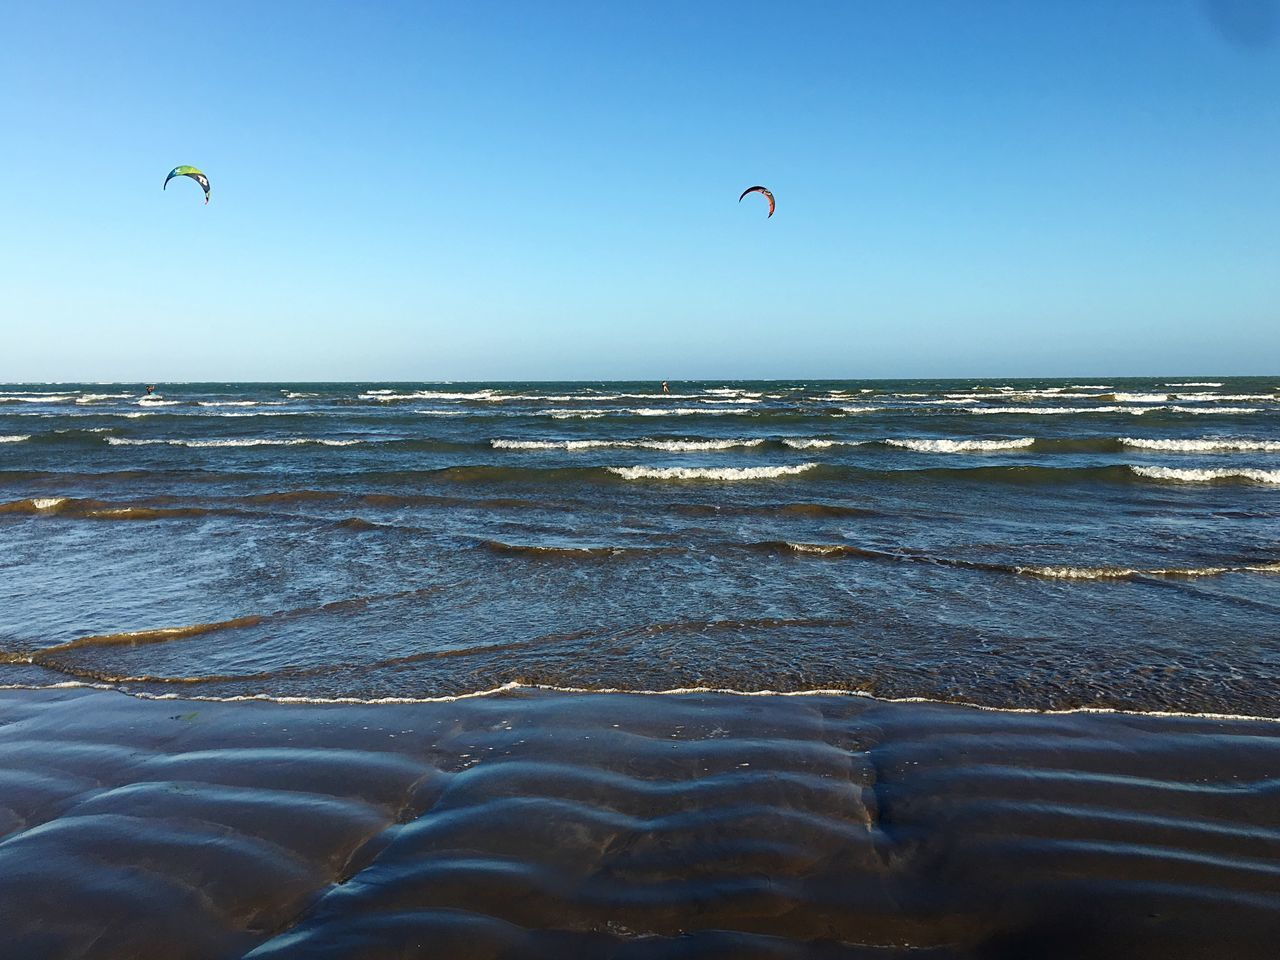 Sunlight Sea Beach Beauty In Nature Horizon Over Water Adventure Nature Clear Sky Water Extreme Sports Scenics Outdoors Wave Tranquility Sport Kiteboarding Day Real People Caribbean Caribbean Sea Kites Kitesurfing Beauty In Nature Kitesurf Sky